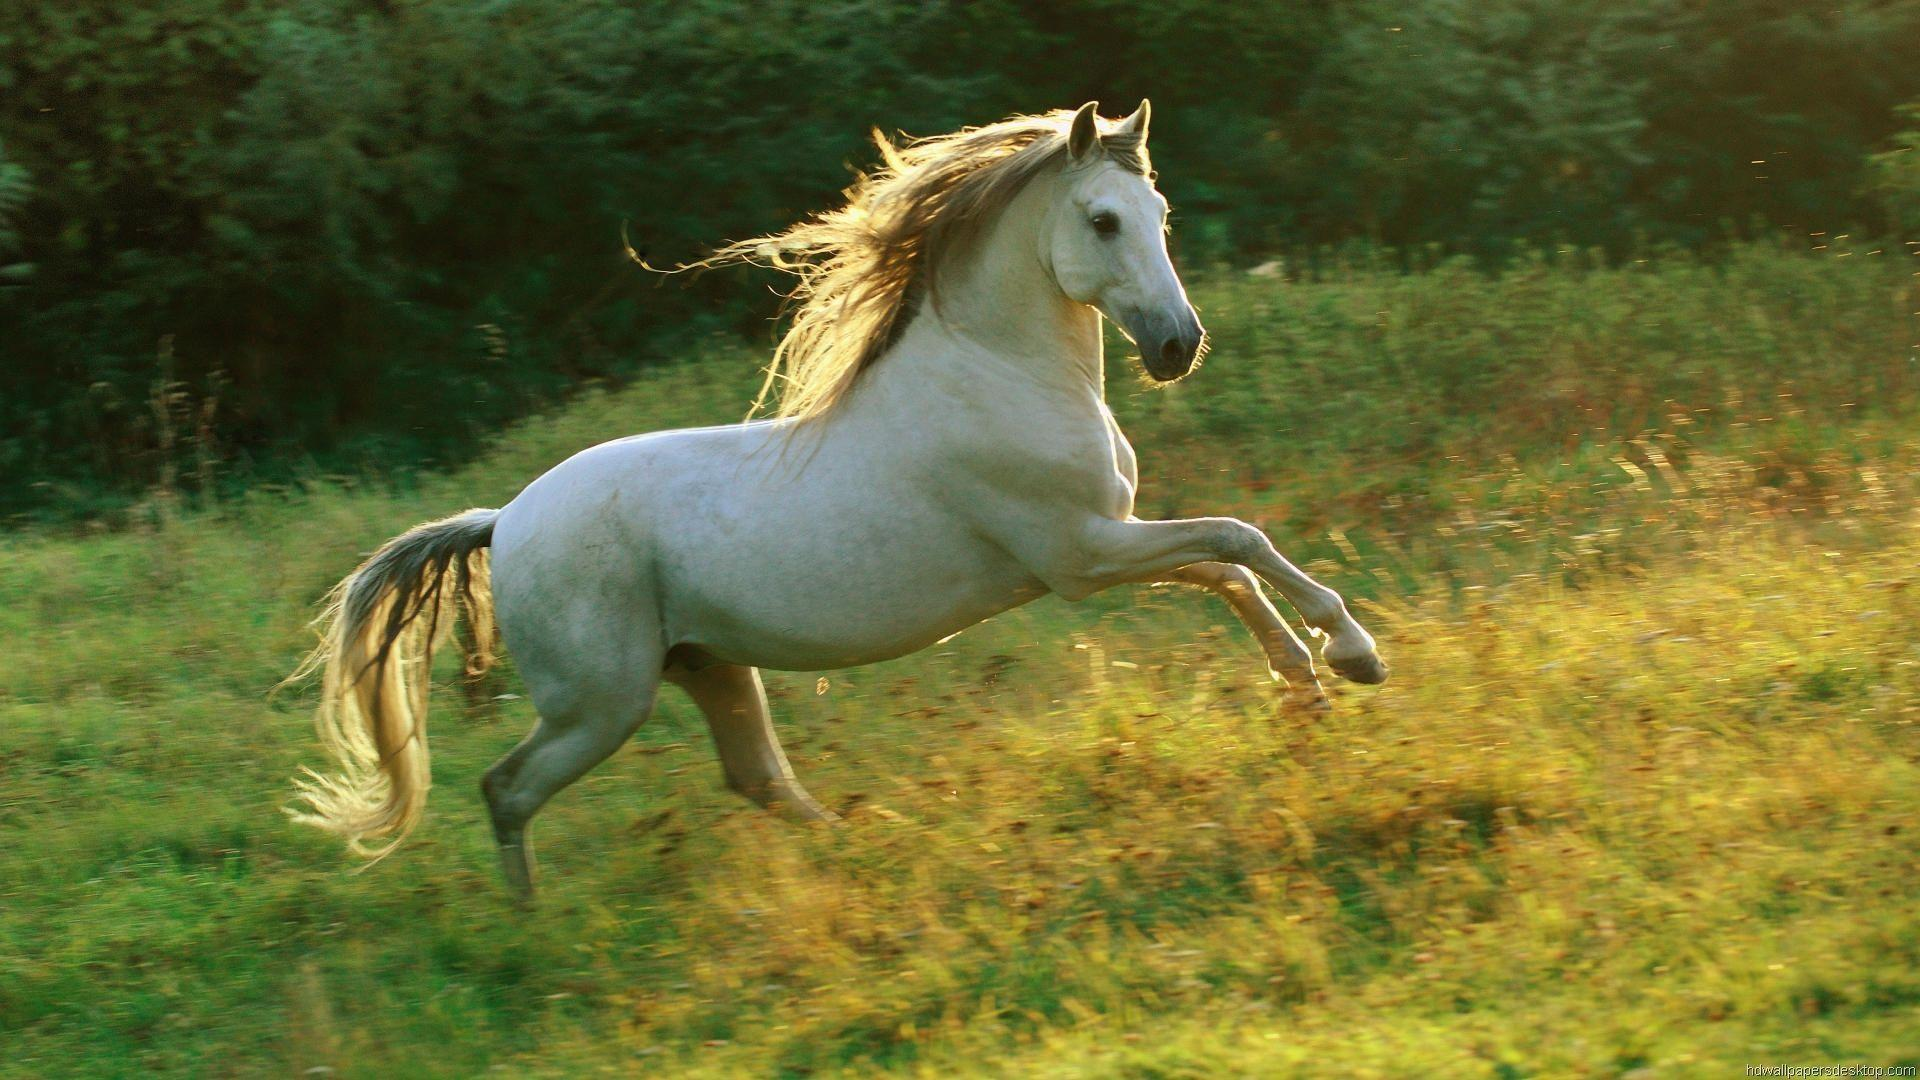 cute horse wallpapers horses background pretty desktop bing andalusian animal really stallion running arabian nature summer